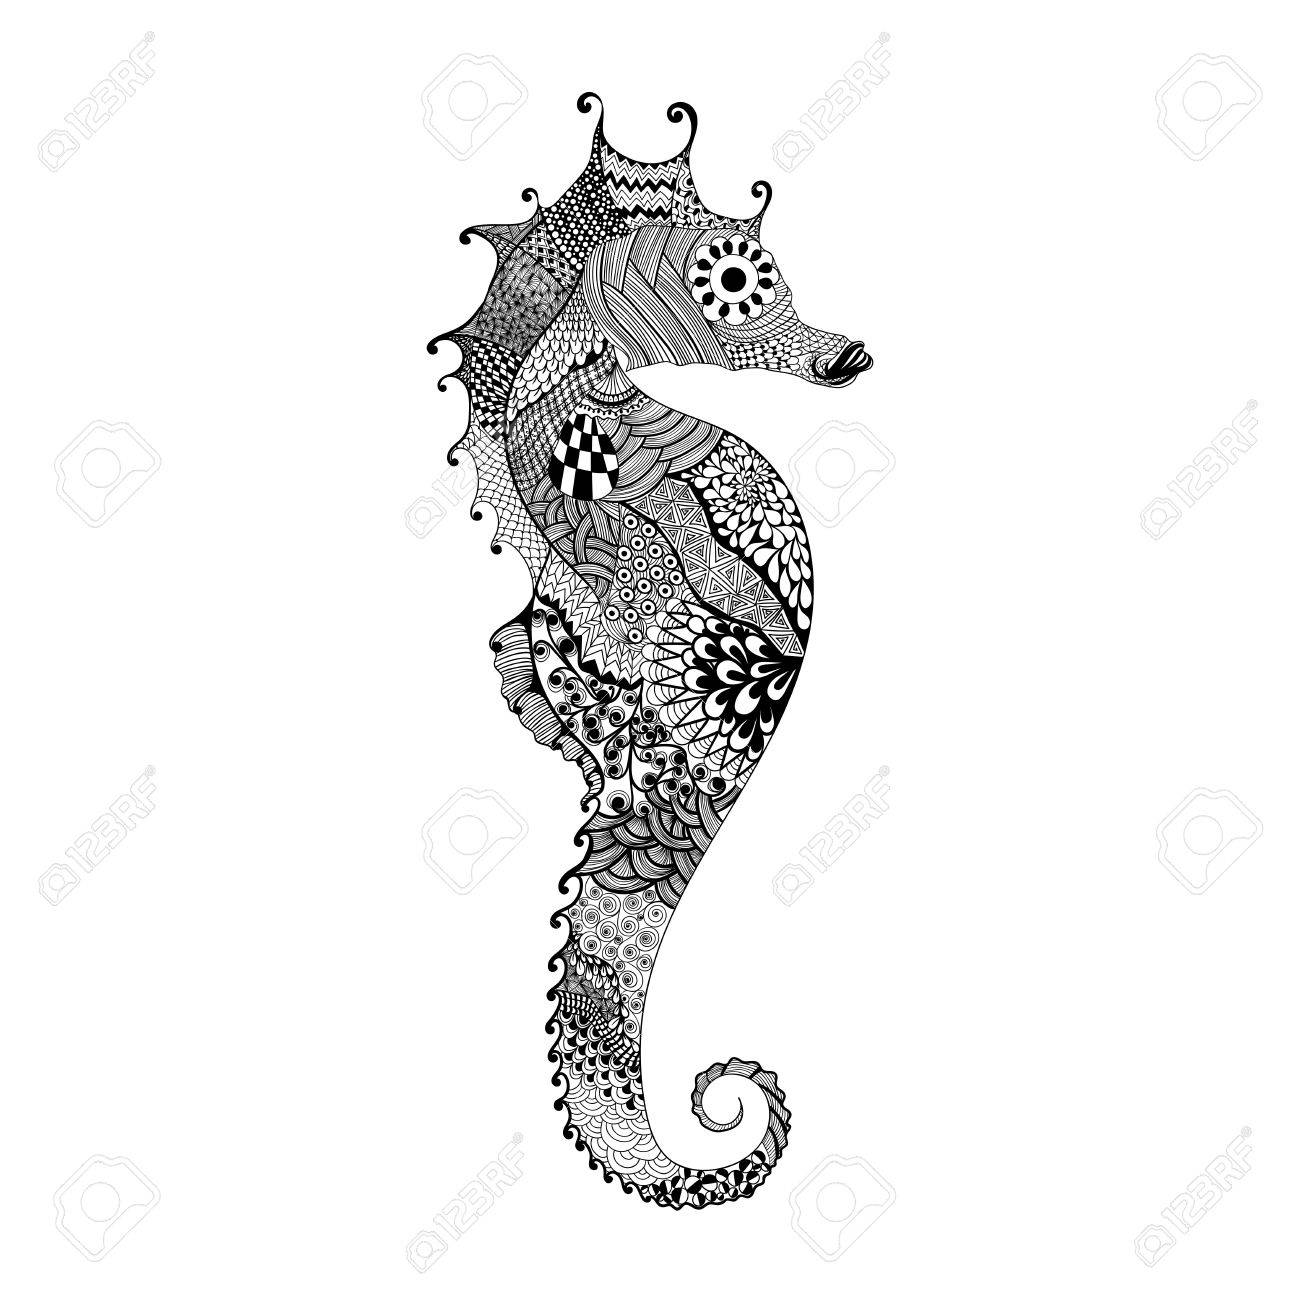 Zentangle Stylized Black Sea Horse Hand Drawn Vector Illustration Royalty Free Cliparts Vectors And Stock Illustration Image 51549856